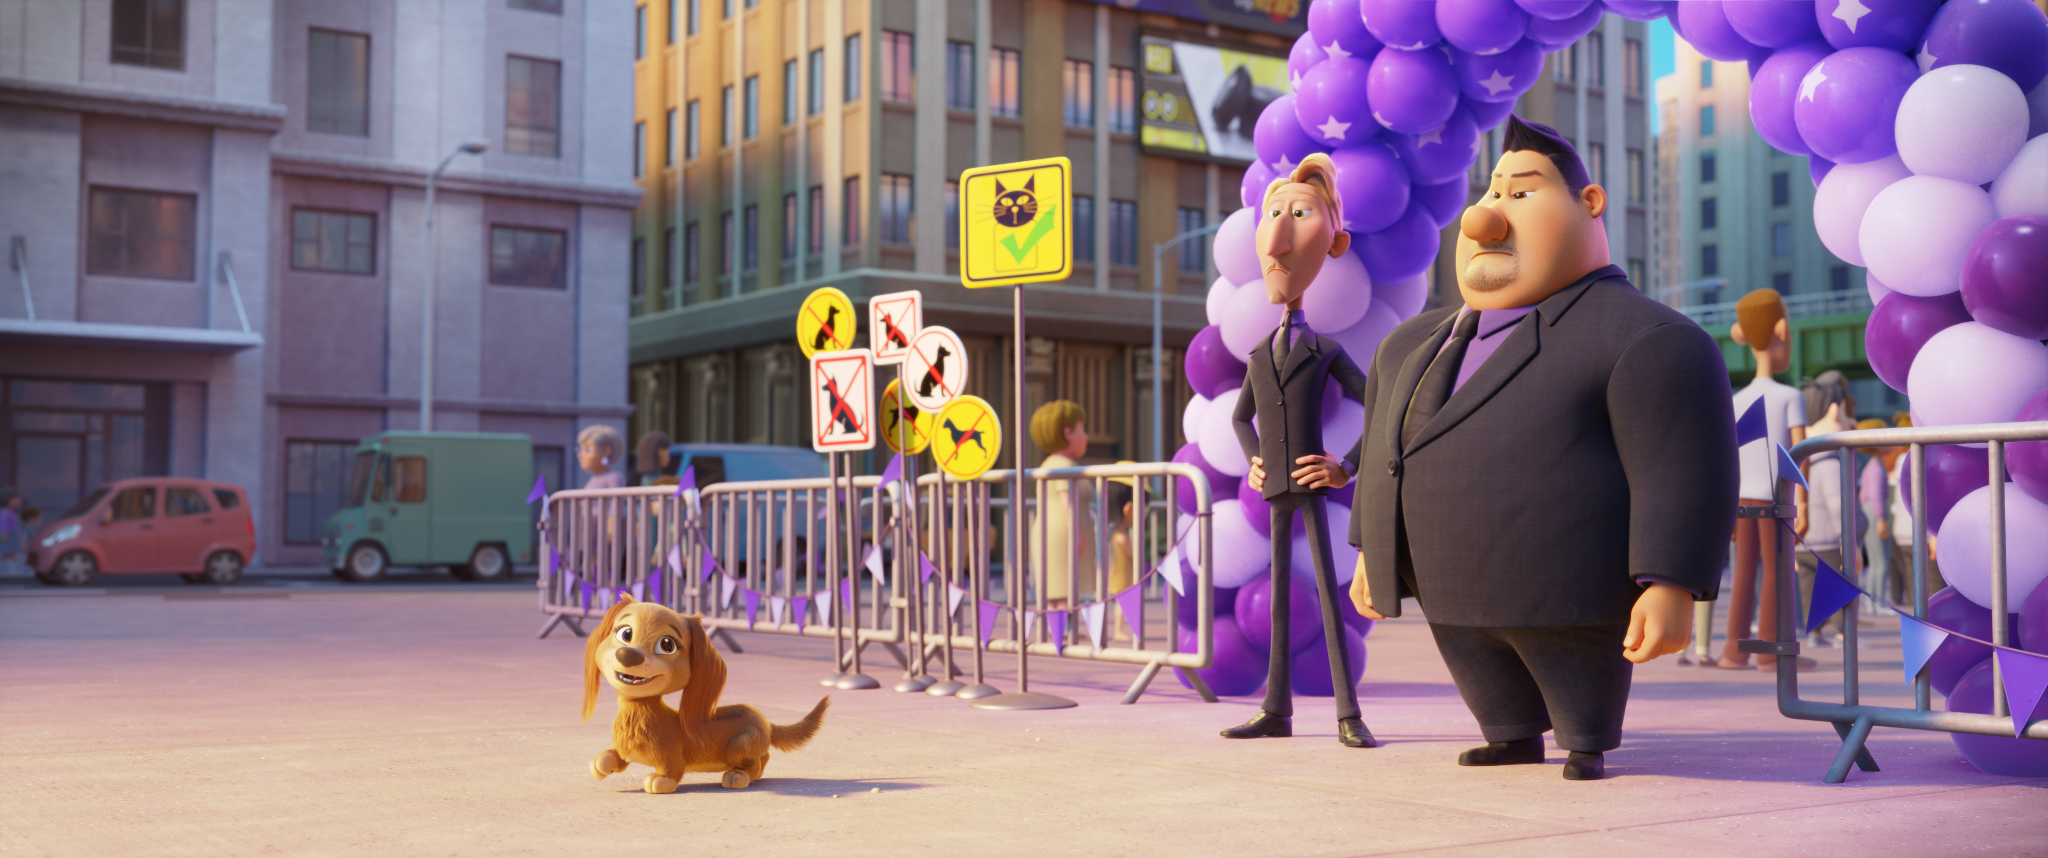 L-R: Liberty (voiced by Marsai Martin), Ruben (voiced by Dax Shepard), and Butch (voiced by Randall Park) in PAW PATROL: THE MOVIE from Paramount Pictures. Photo Credit: Courtesy of Spin Master.